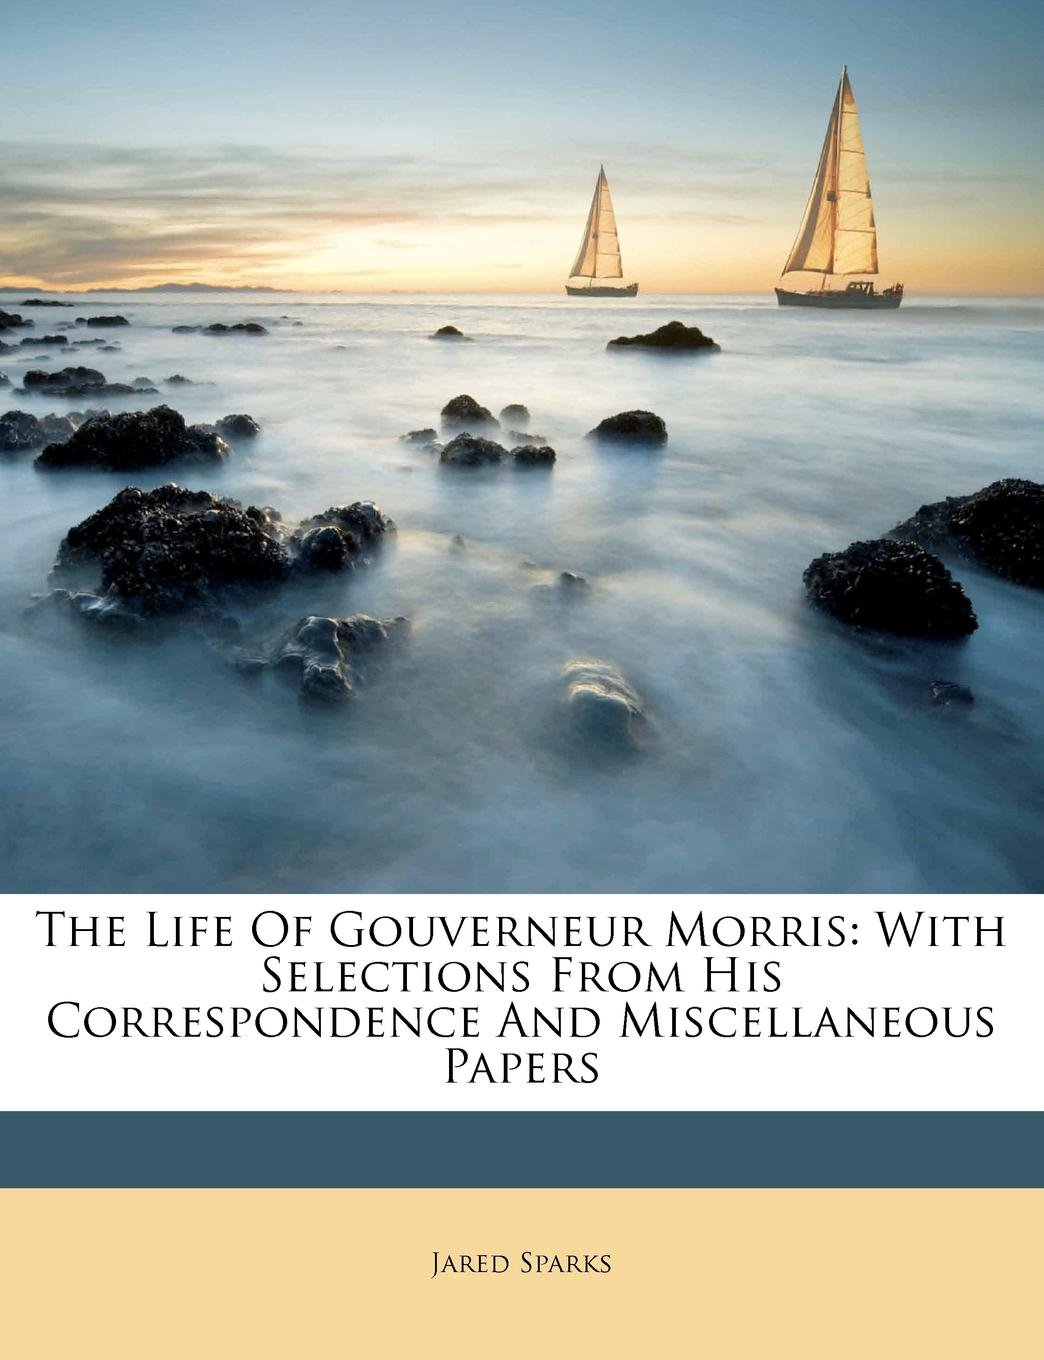 The Life Of Gouverneur Morris: With Selections From His Correspondence And Miscellaneous Papers PDF